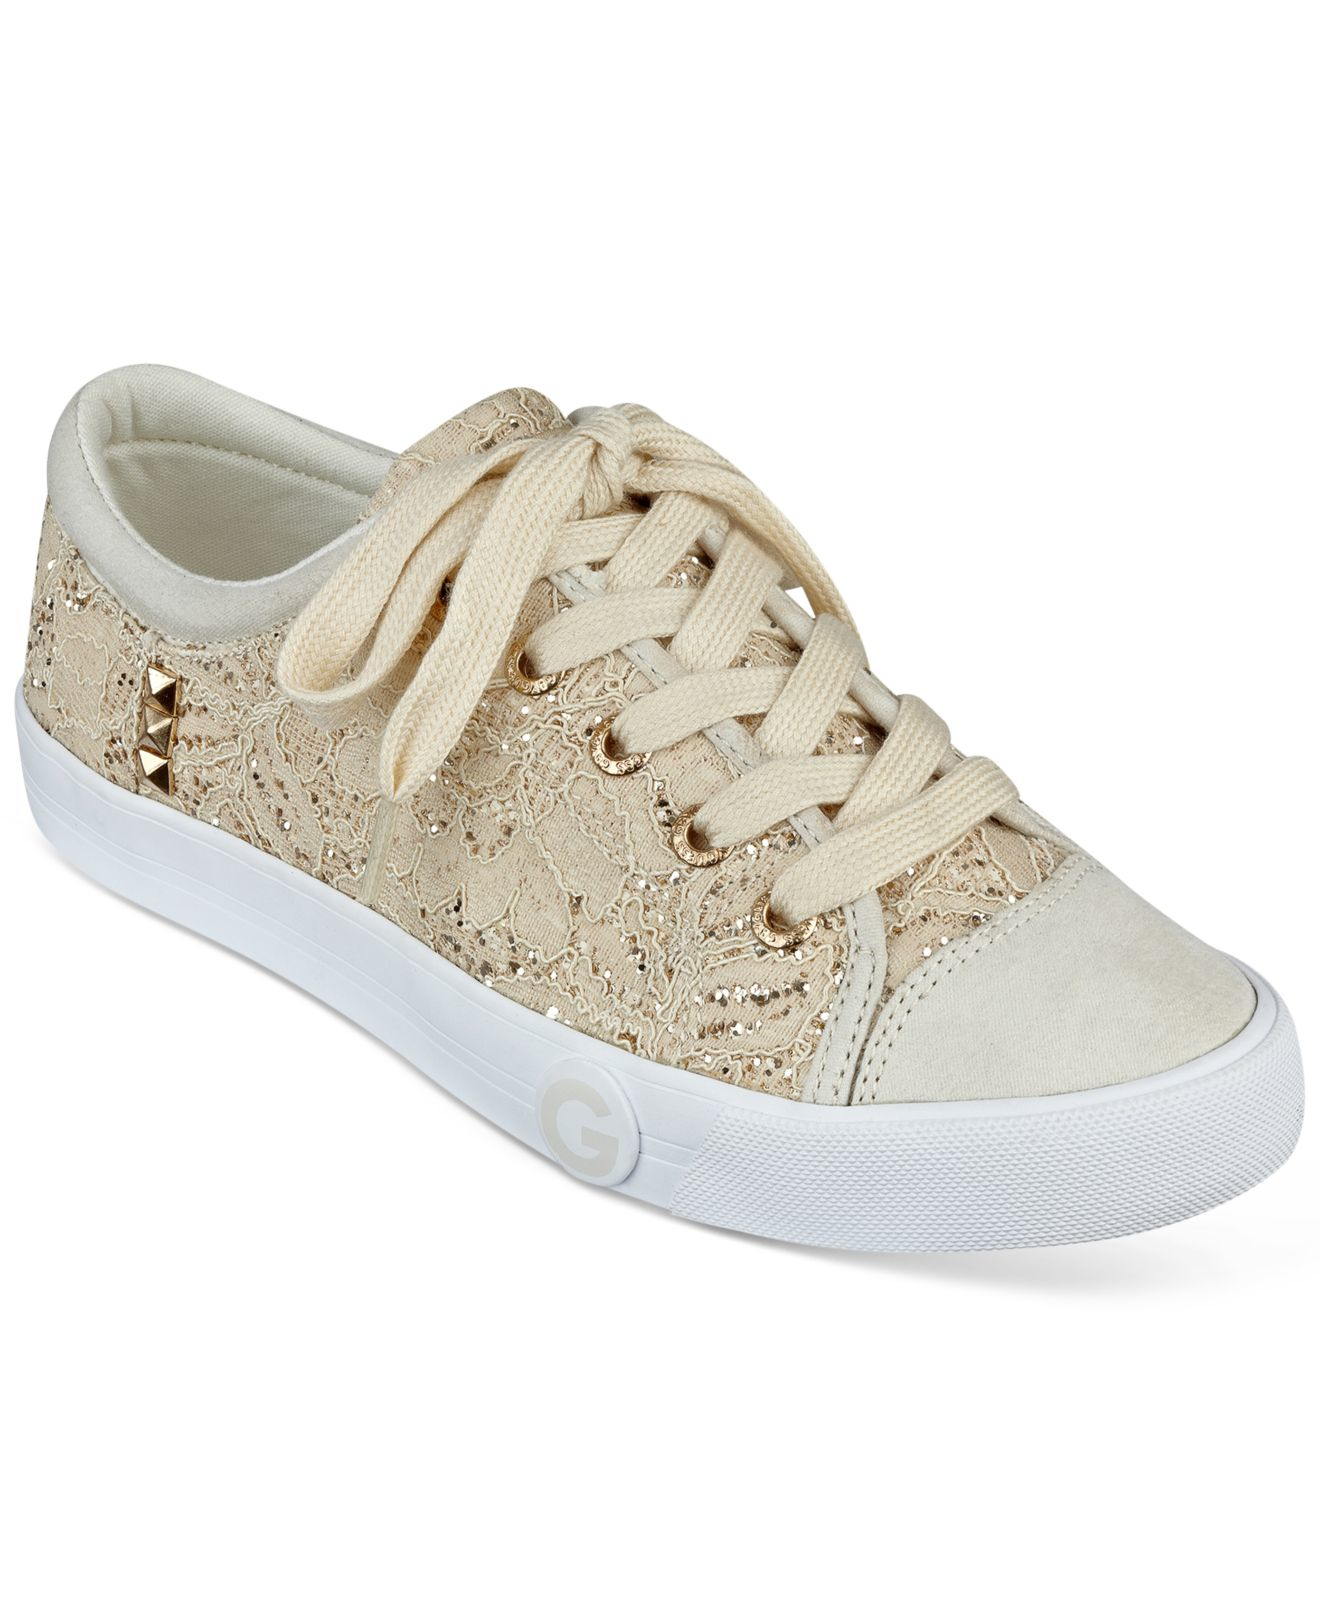 G by Guess Oona Sneakers in Gold Lace